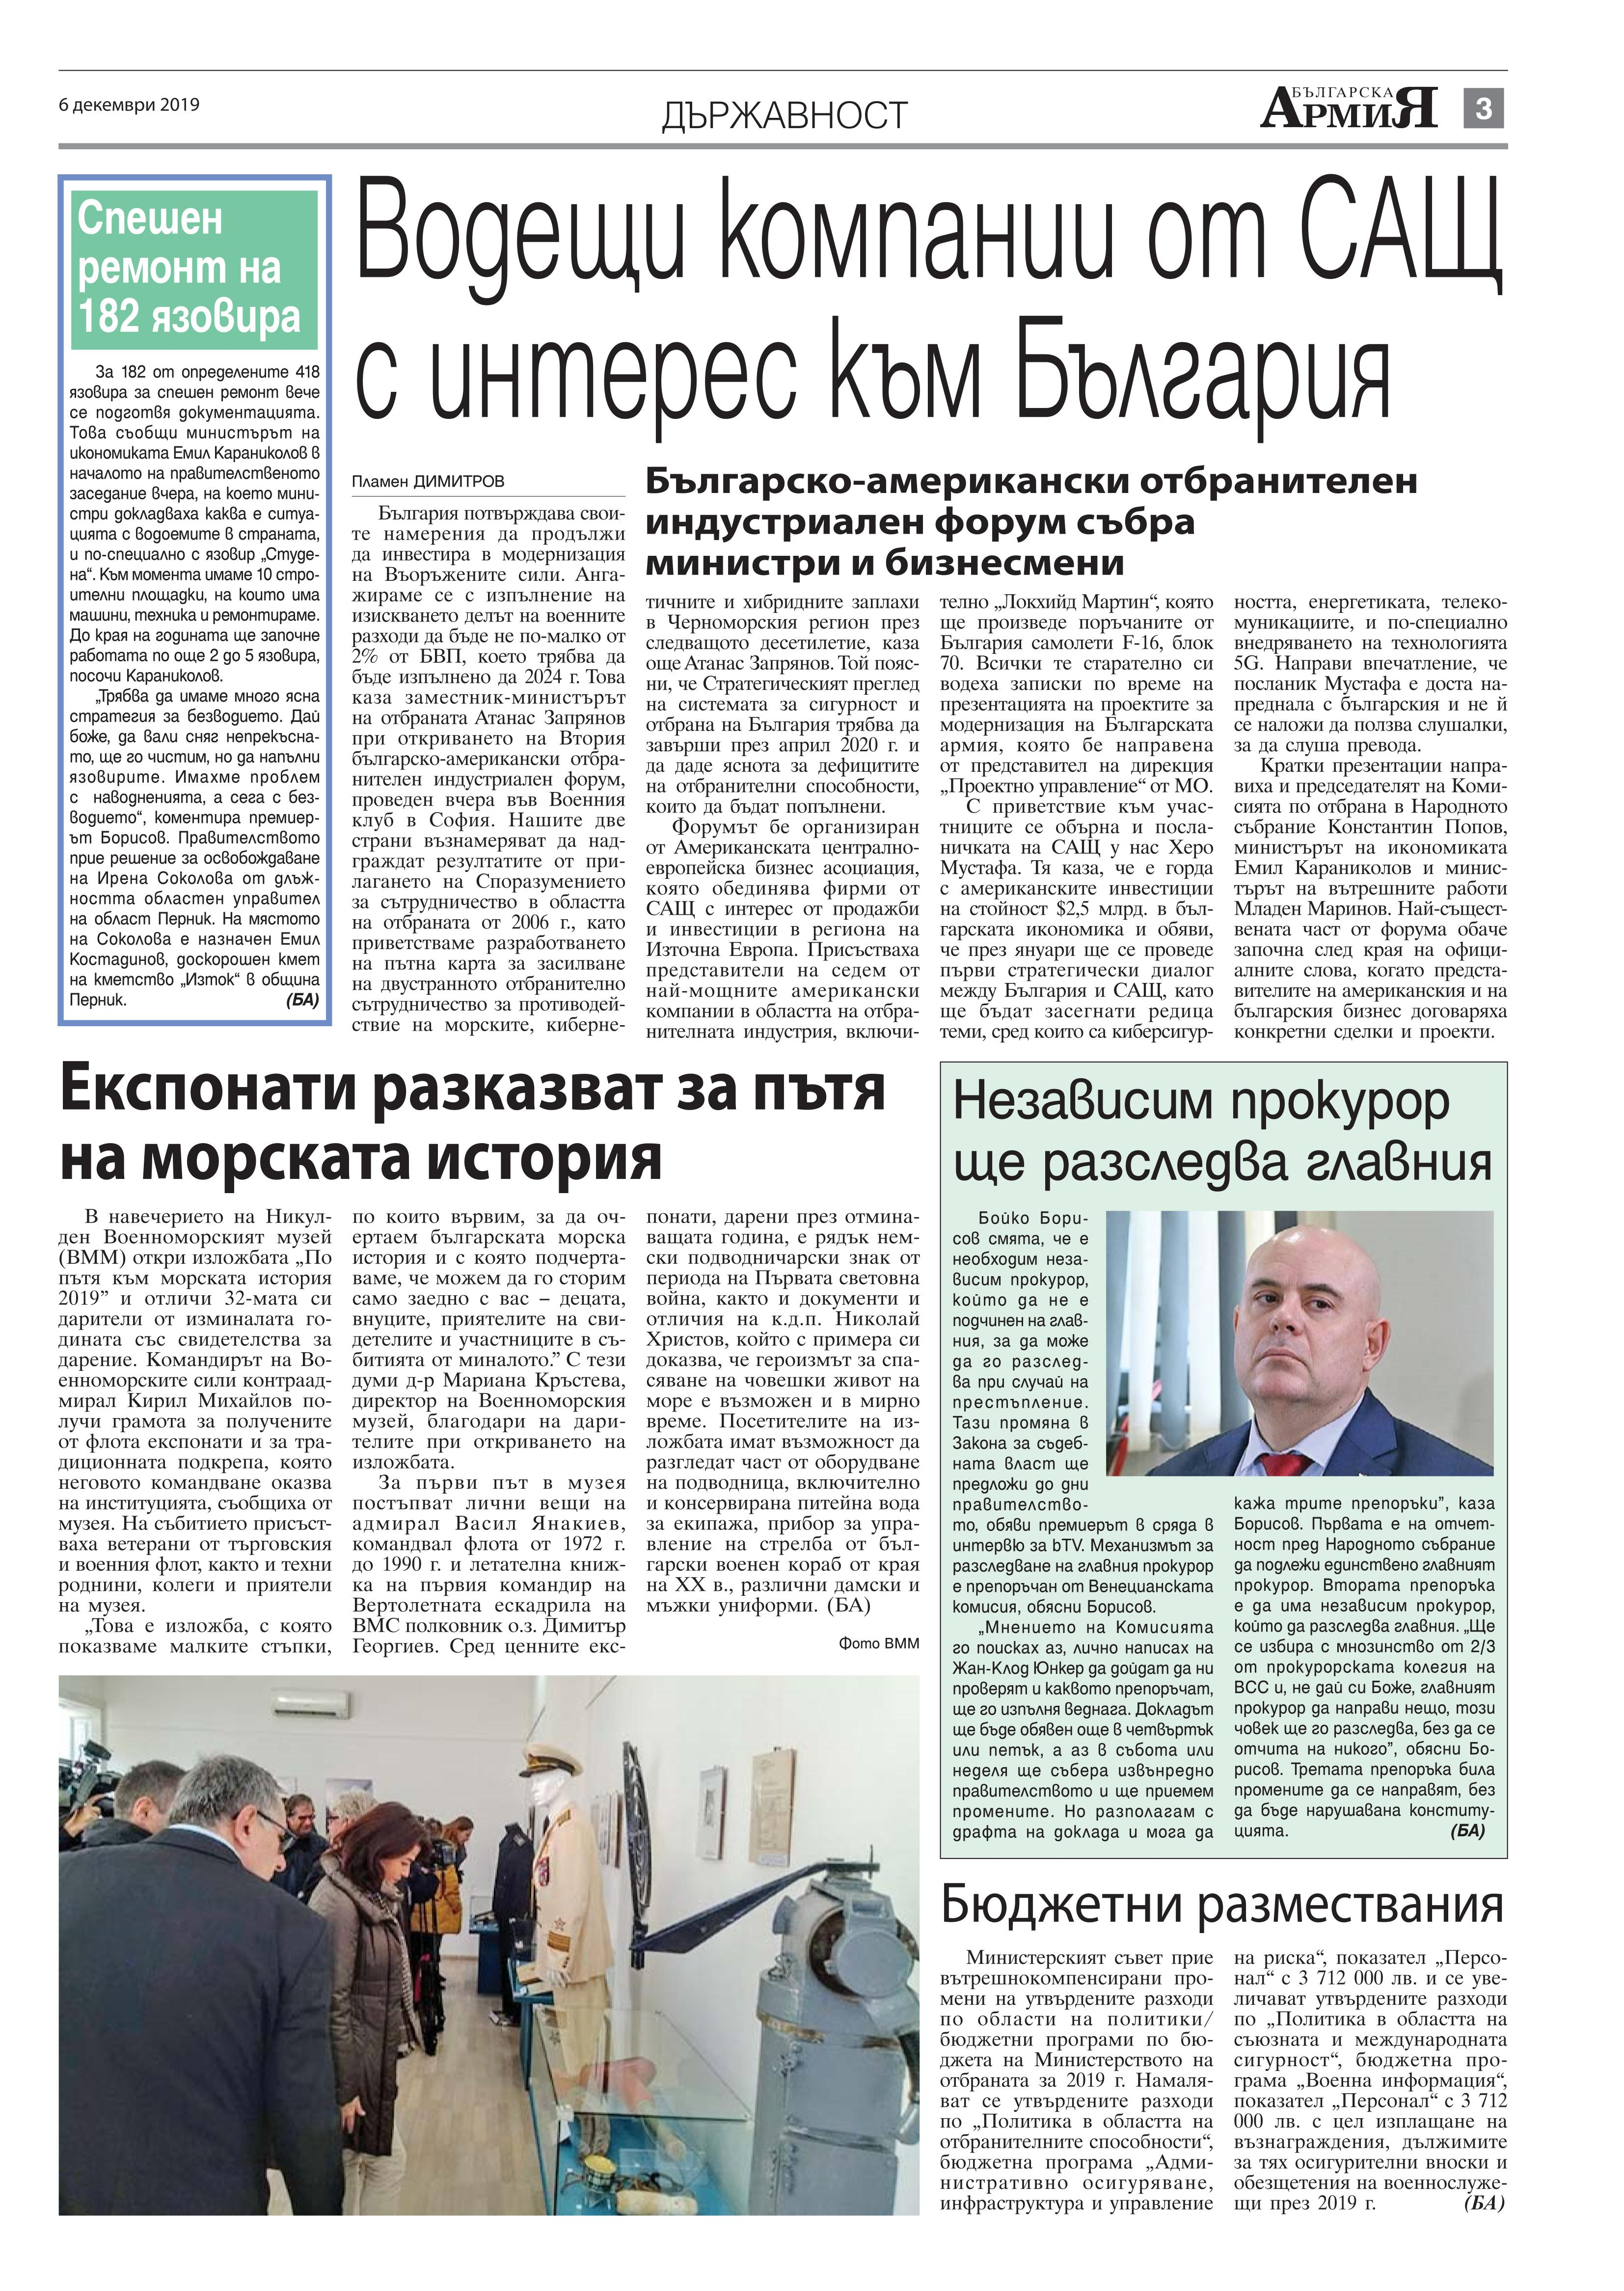 https://www.armymedia.bg/wp-content/uploads/2015/06/03.page1_-115.jpg